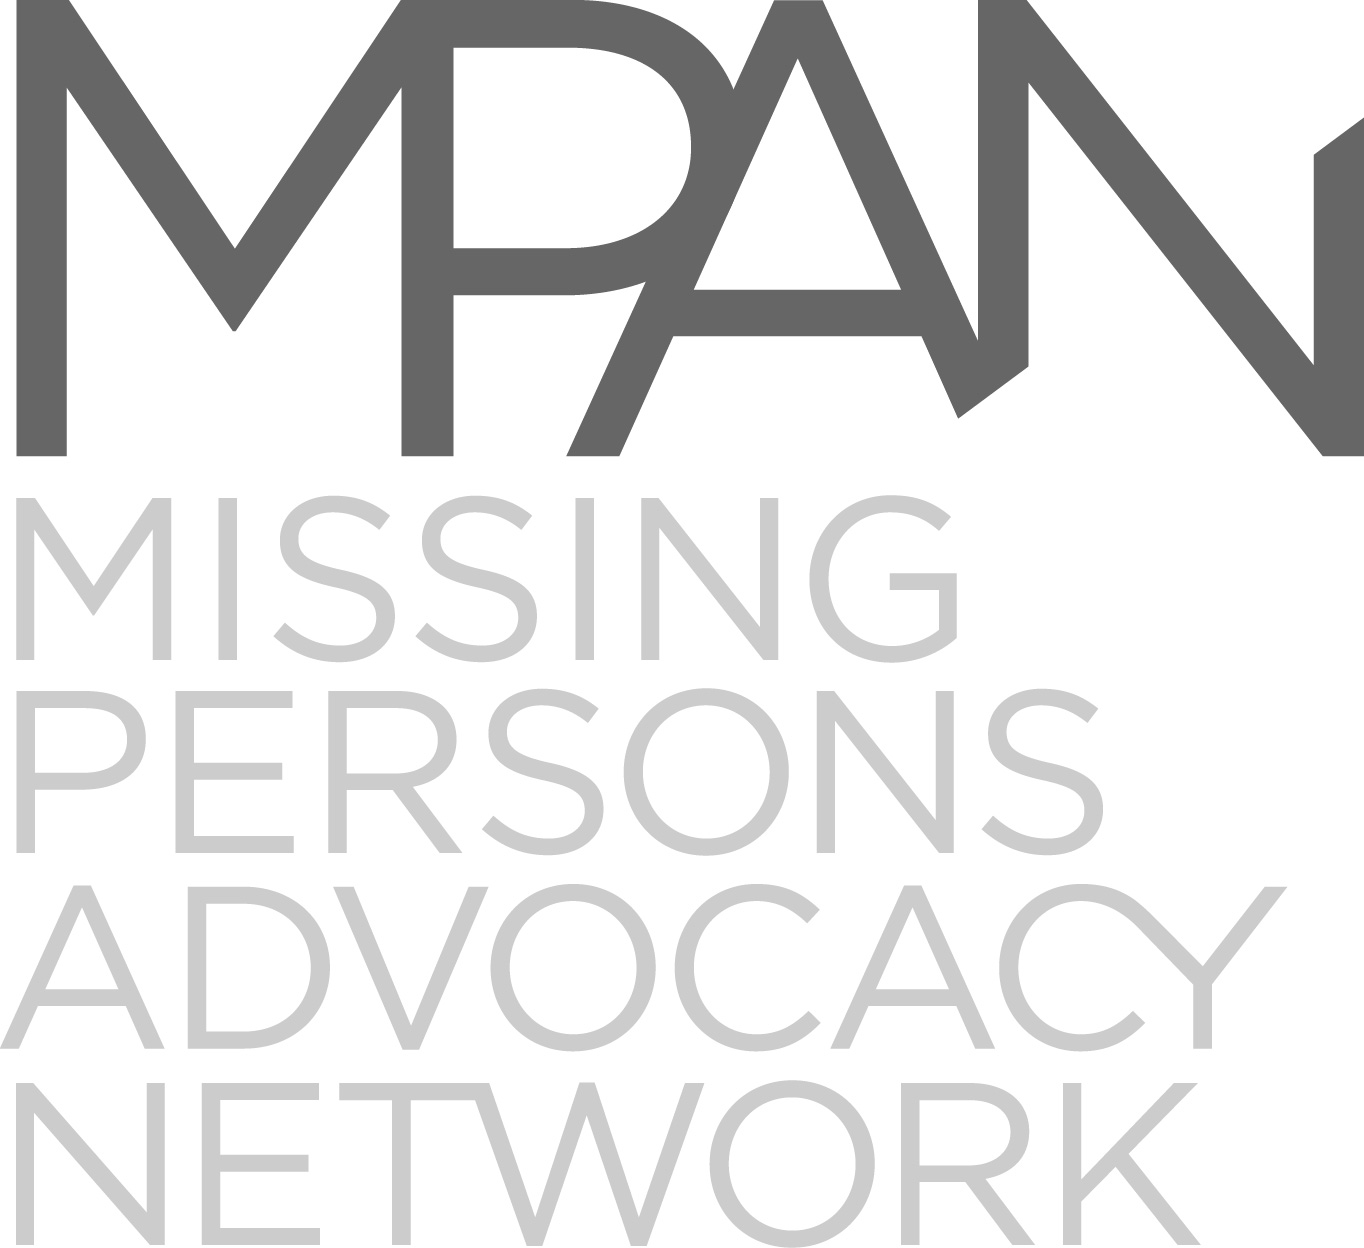 Missing Persons Advocacy Network (MPAN) creates awareness for missing persons while offering support to families and friends. -